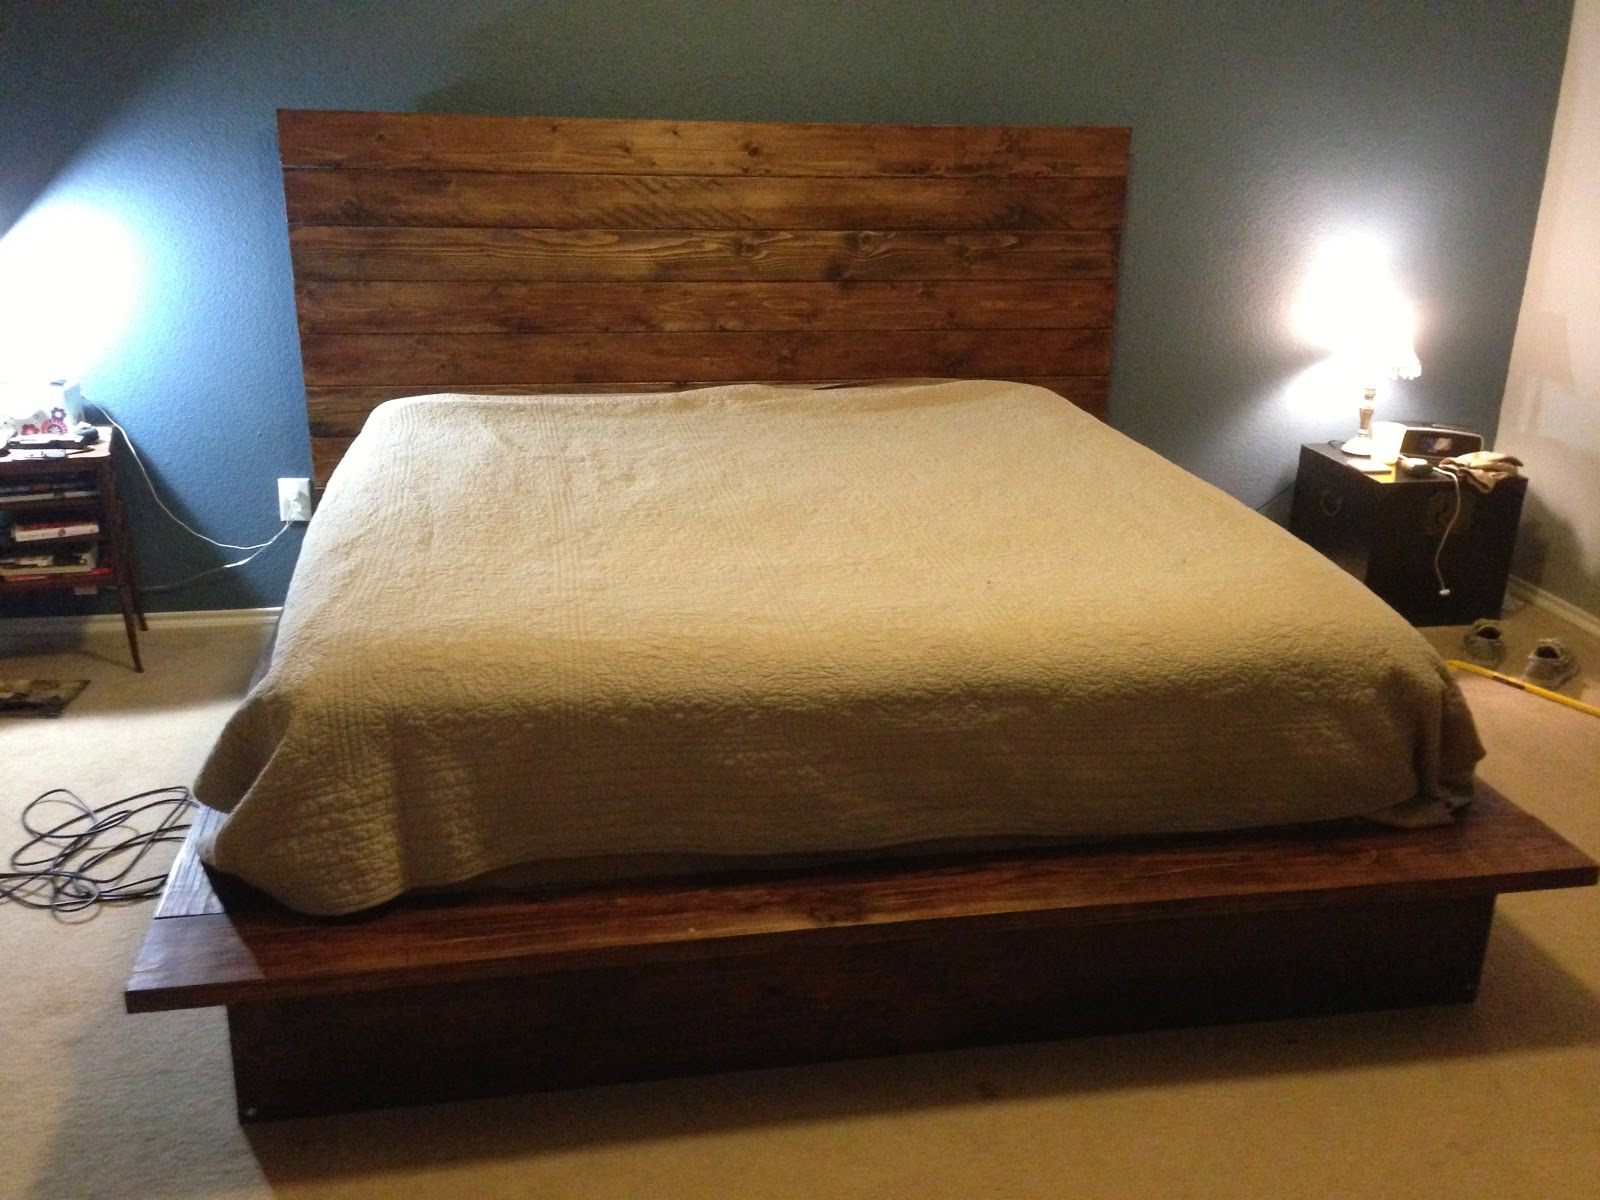 Fire Fly Fisherman: DIY Bed Frame